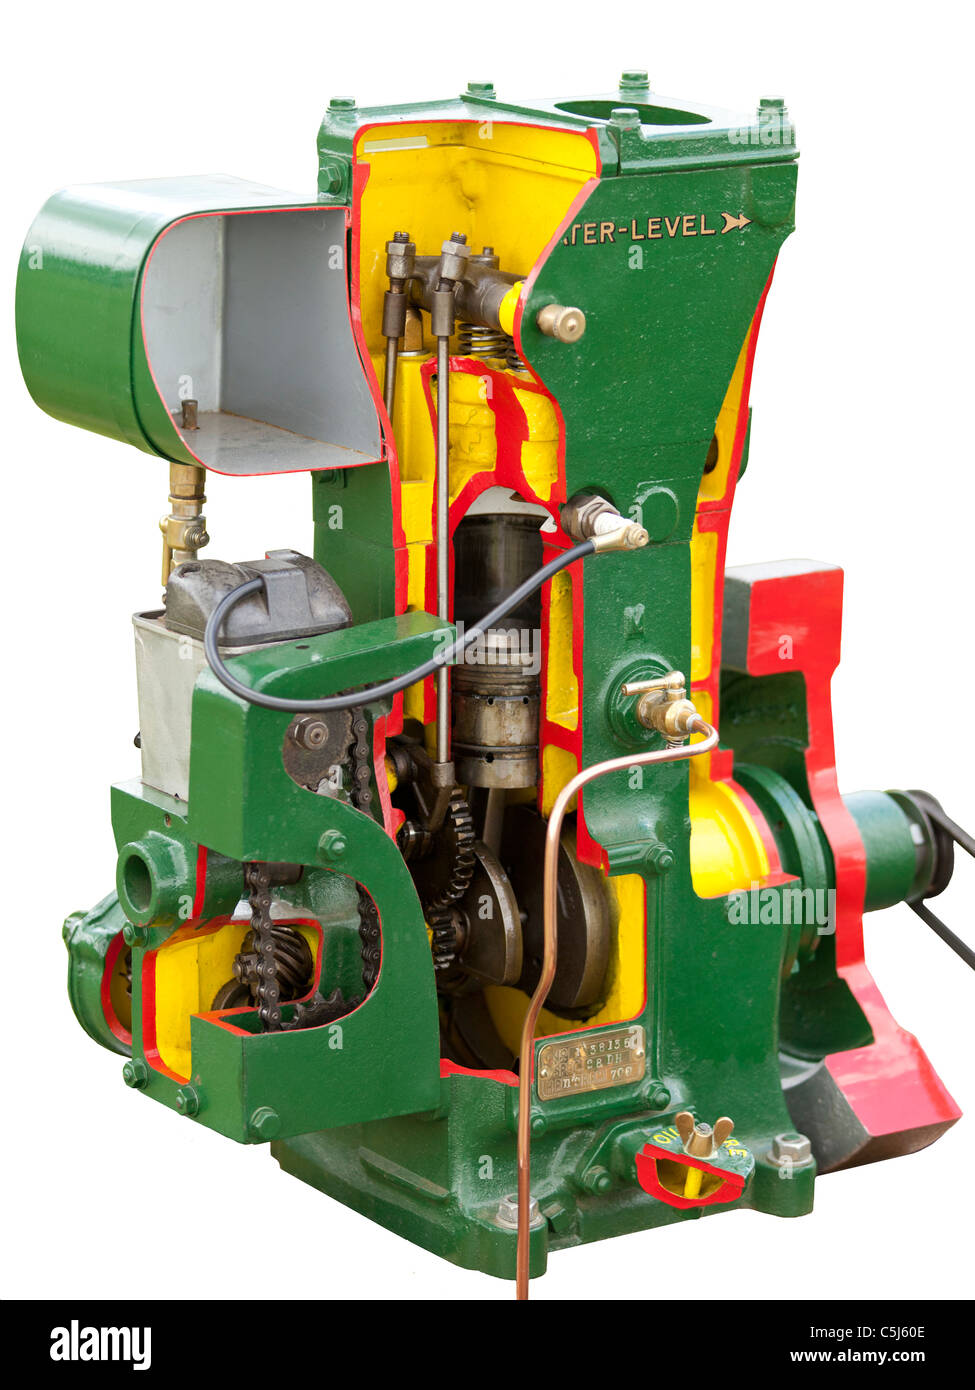 Cut away section of Lister D Type Stationary Diesel Engine Stock Photo -  AlamyAlamy